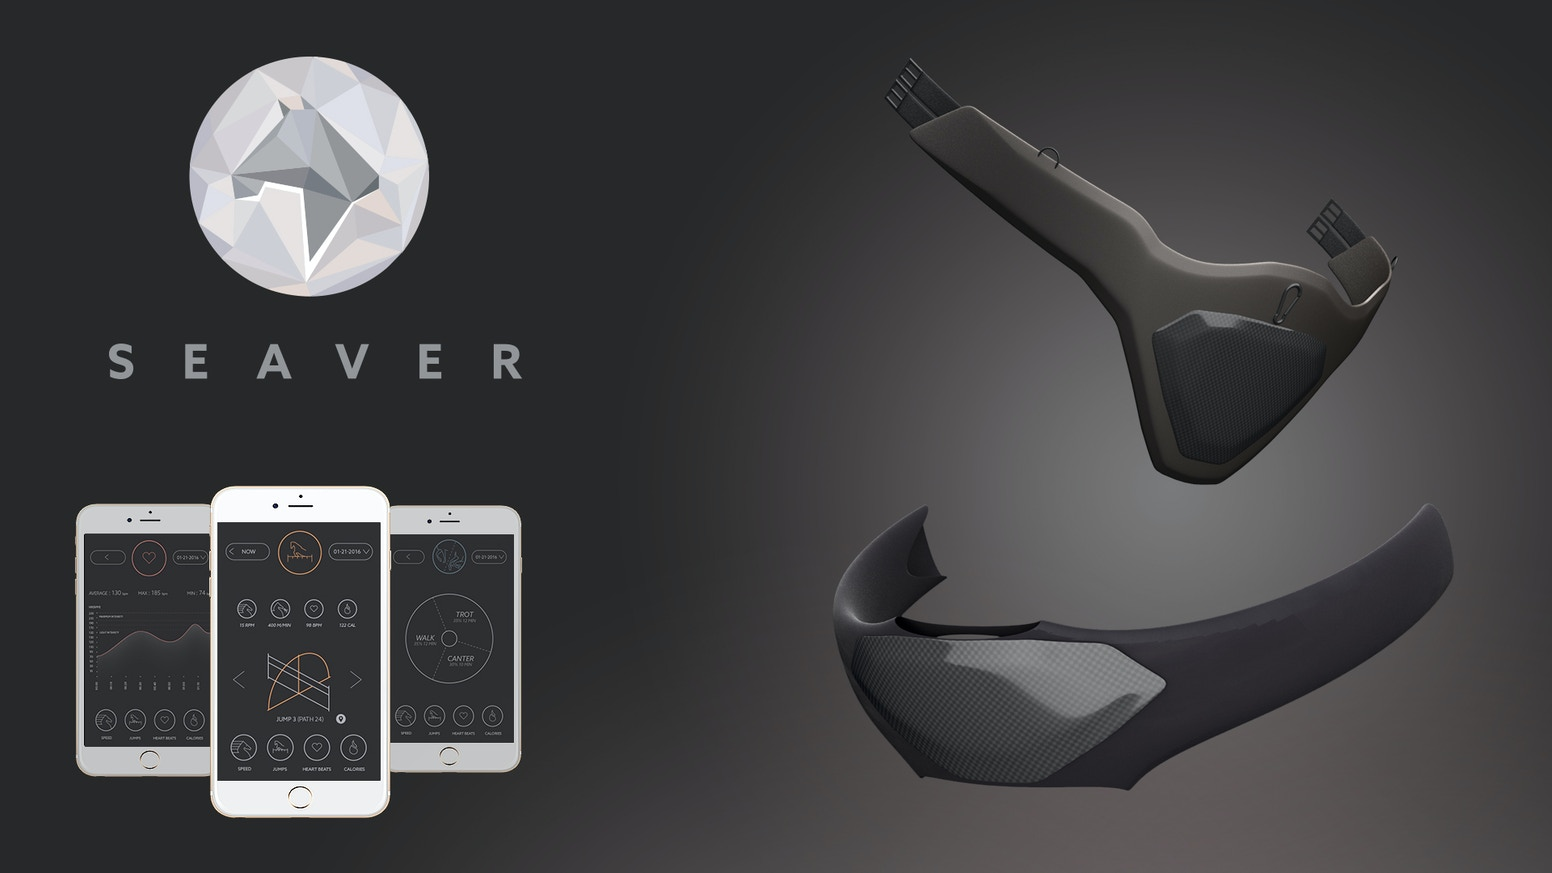 The Seaver girth: the first connected equipment dedicated to horse performance and health care, designed & handmade in France.